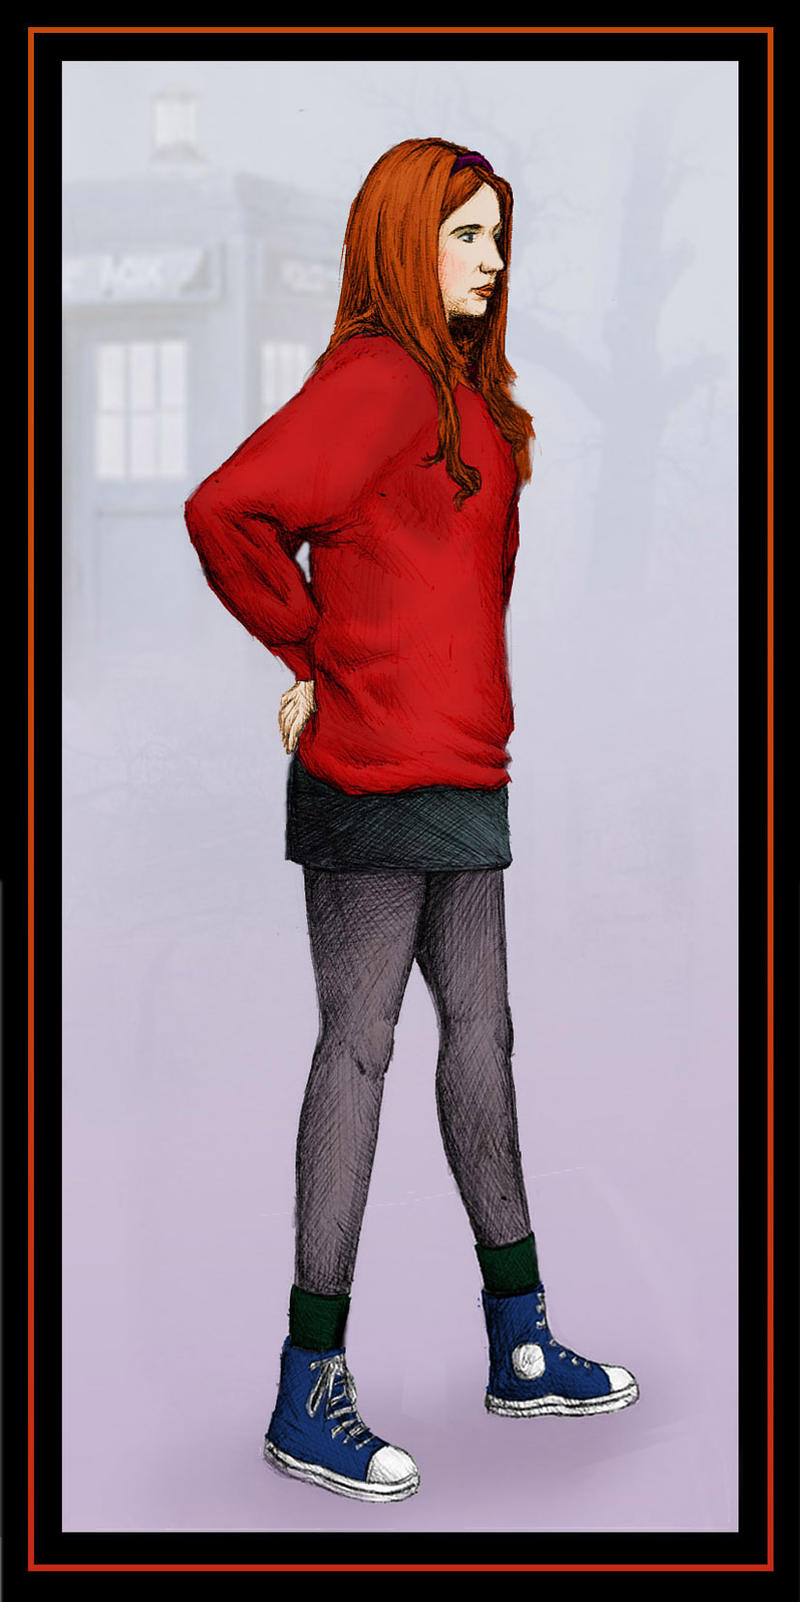 Amy Pond by purgatoryboy Adult Contortionists Pics Nude; Nude Pics Of Jessica Alba; Jorja Fox Nude ...